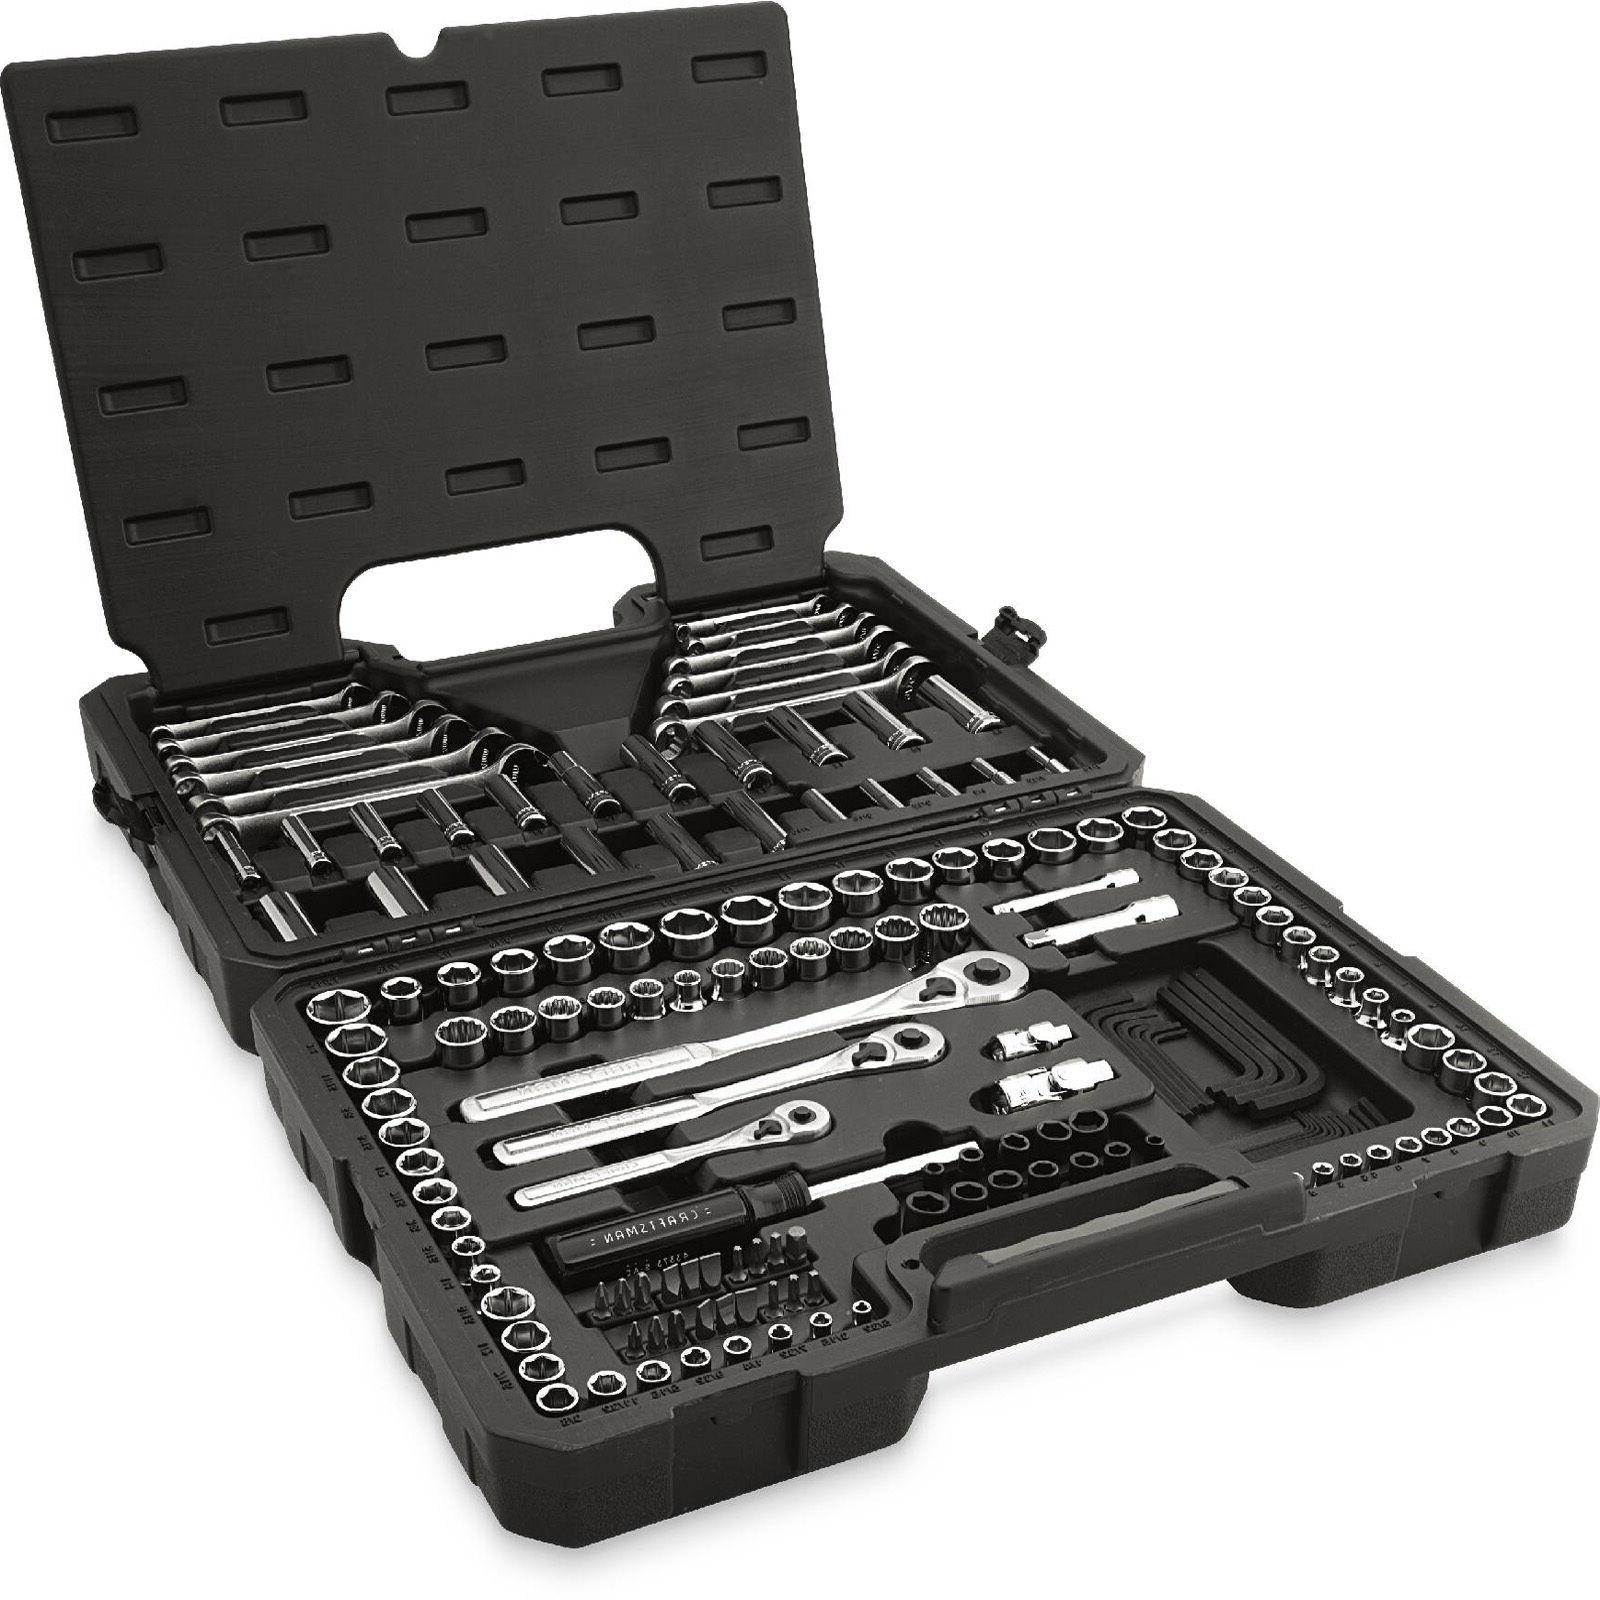 Craftsman 165 Piece pc Tool Kit Metric Socket